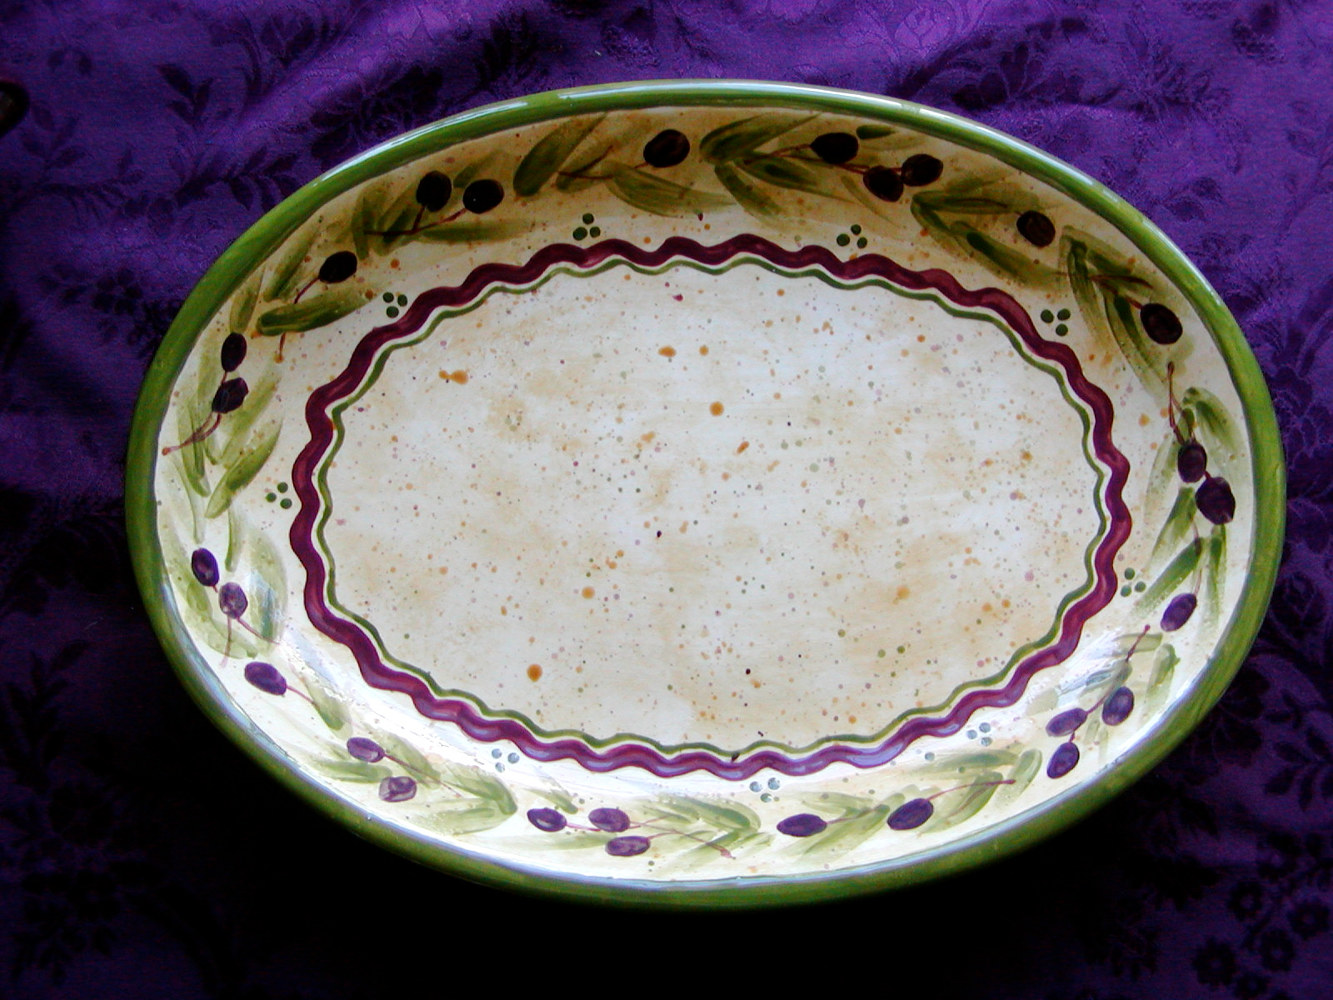 "Painting Italianate Eclectic Glazeworks: 16"" Serving Platter by Linnie (Victoria) Aikens Lindsay"